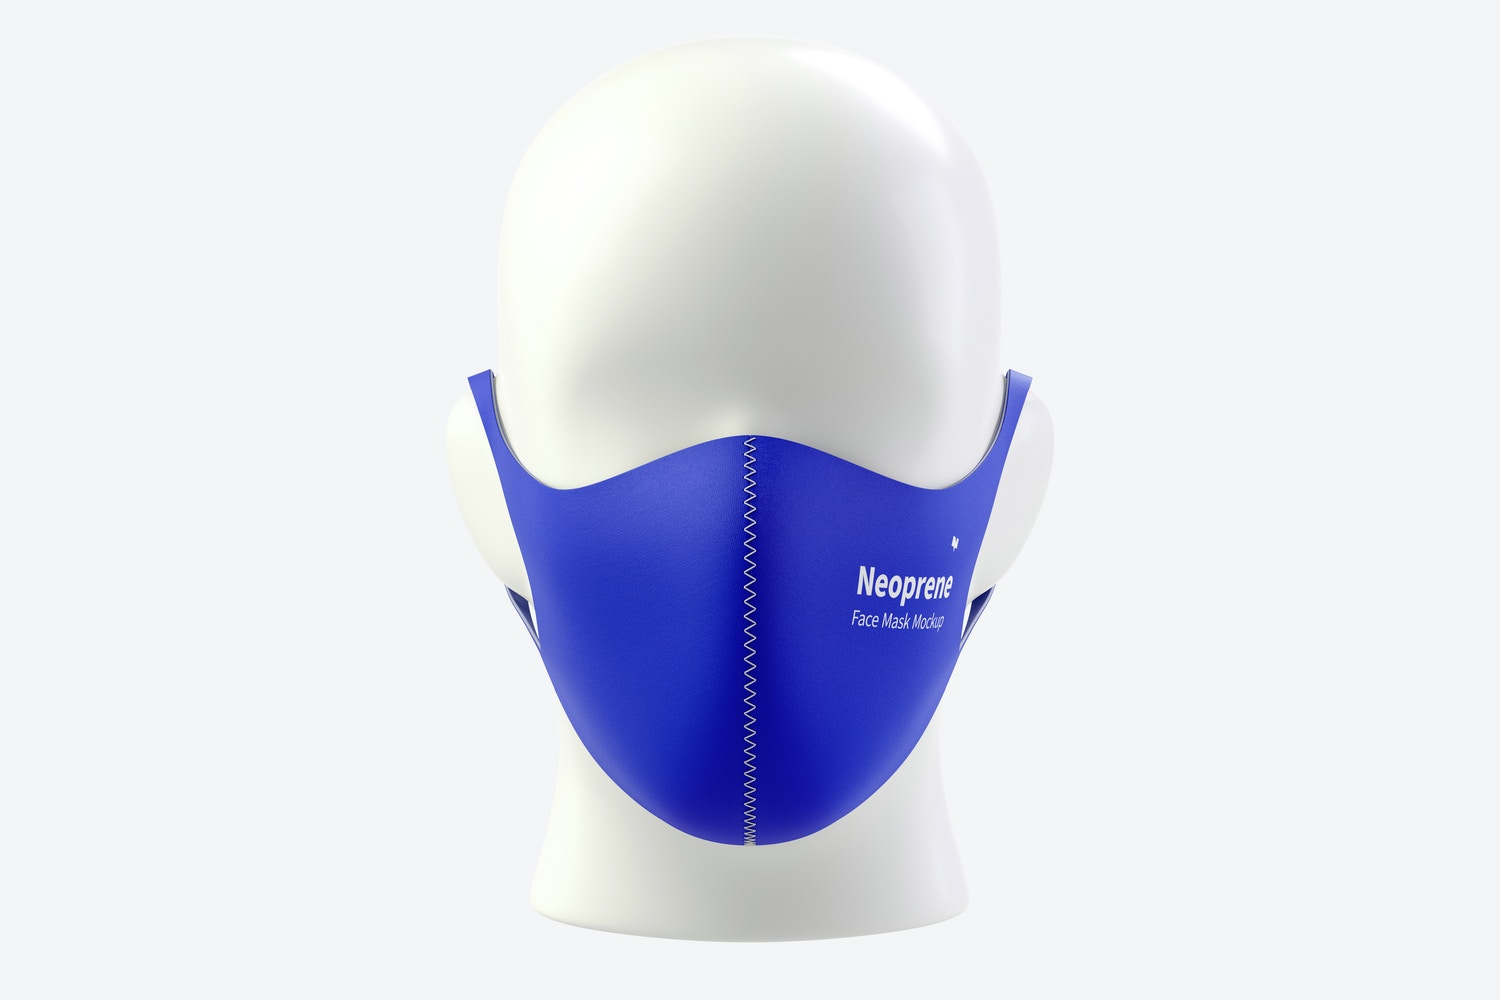 Neoprene Guard Face Mask Mockup, Front View